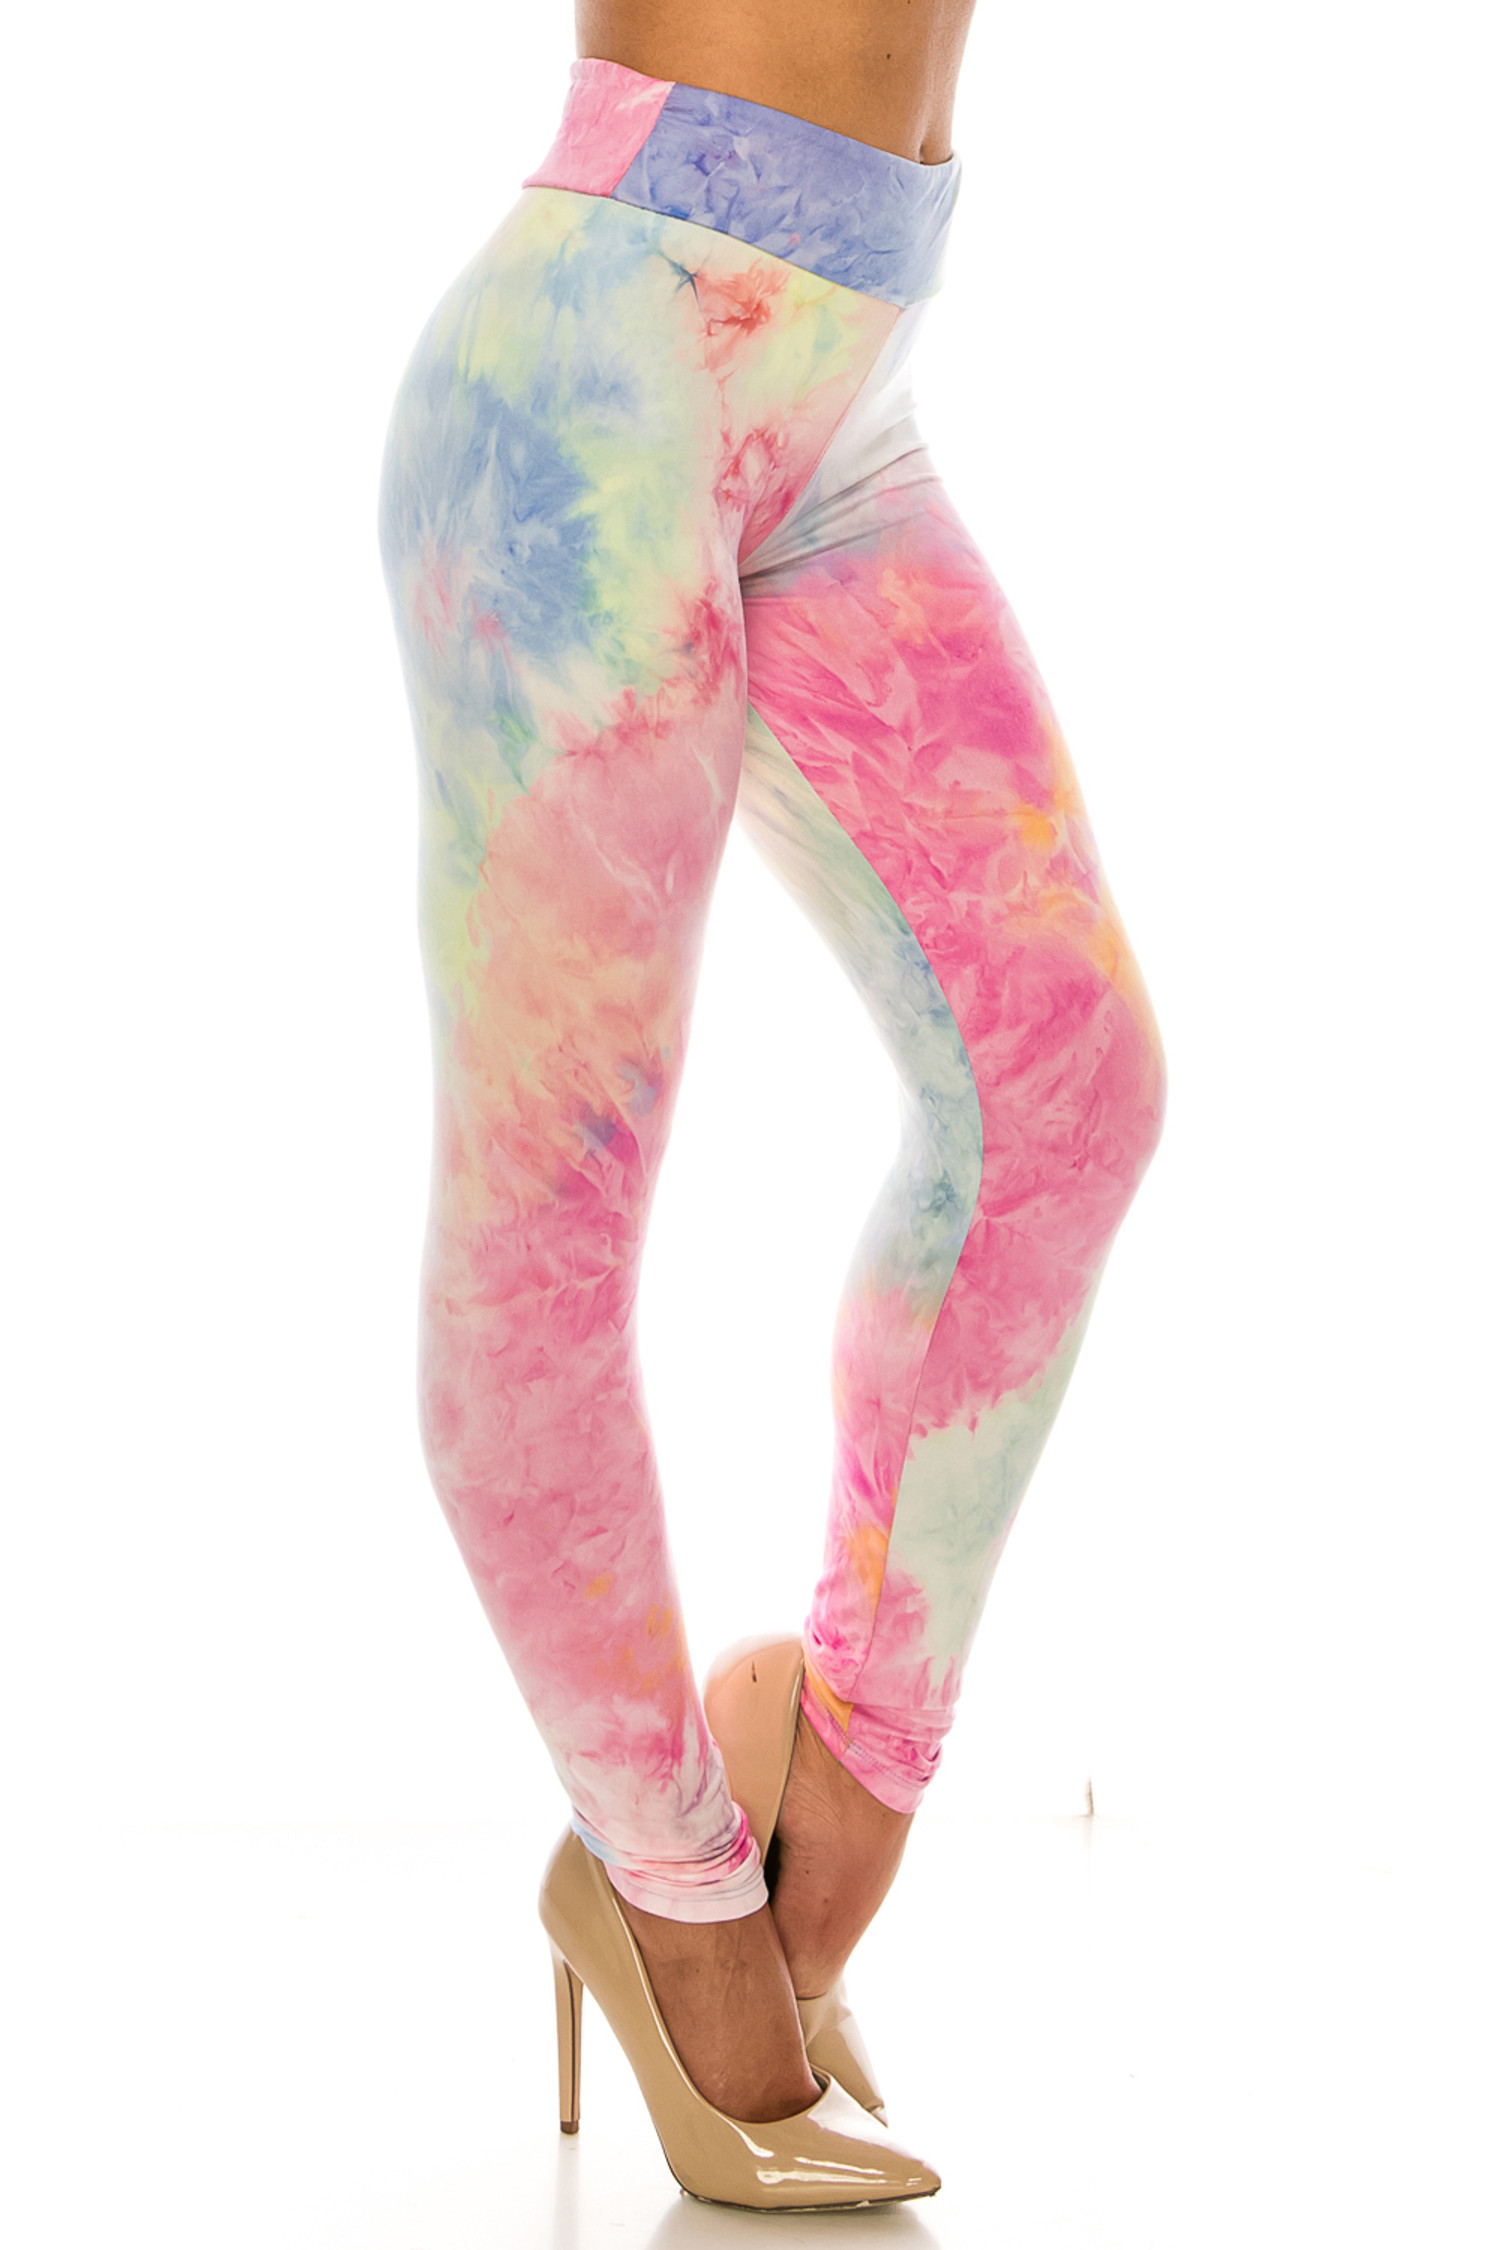 Left side image of Buttery Soft Multi-Color Pastel Tie Dye High Waisted Leggings - Plus Size with a flattering comfort fabric waist.